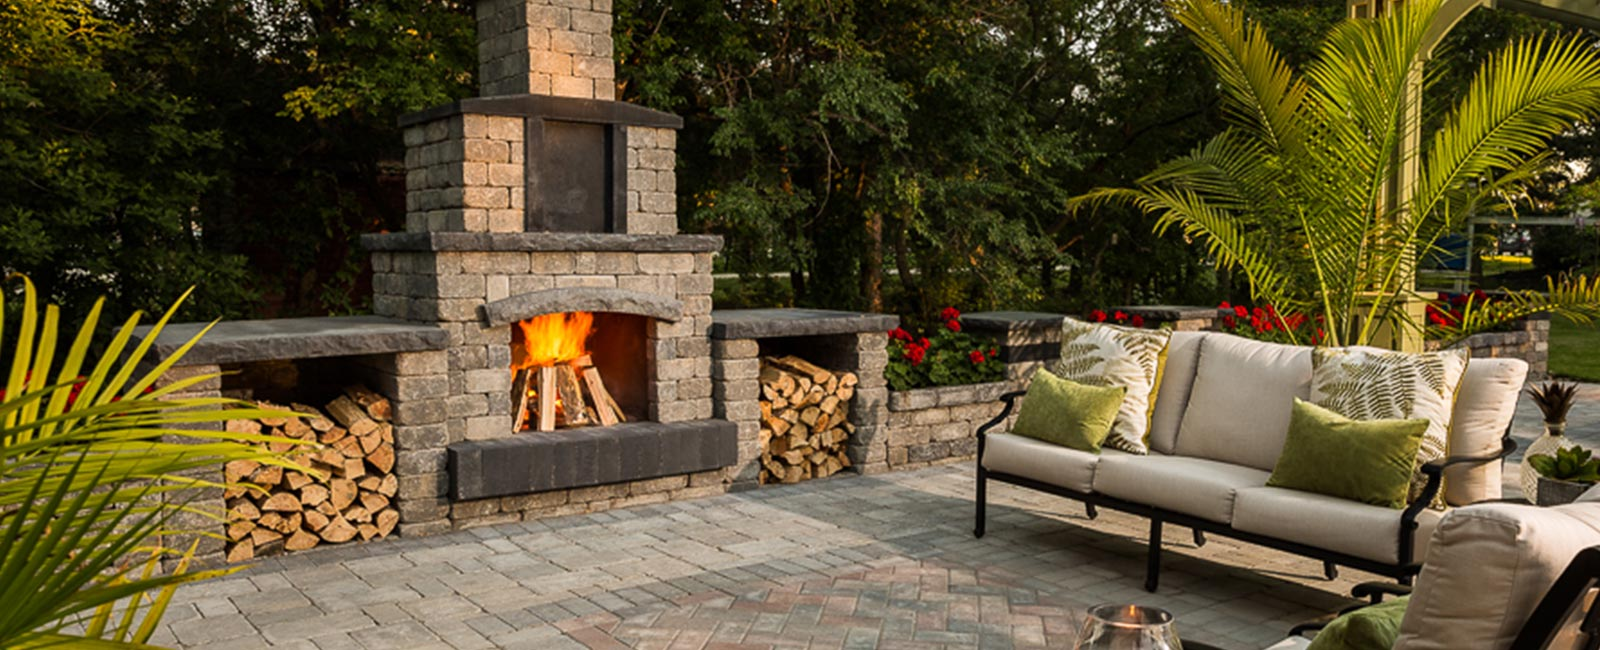 Prelude Landscaping is Winnipeg, Manitoba's leader in Landscaping production.